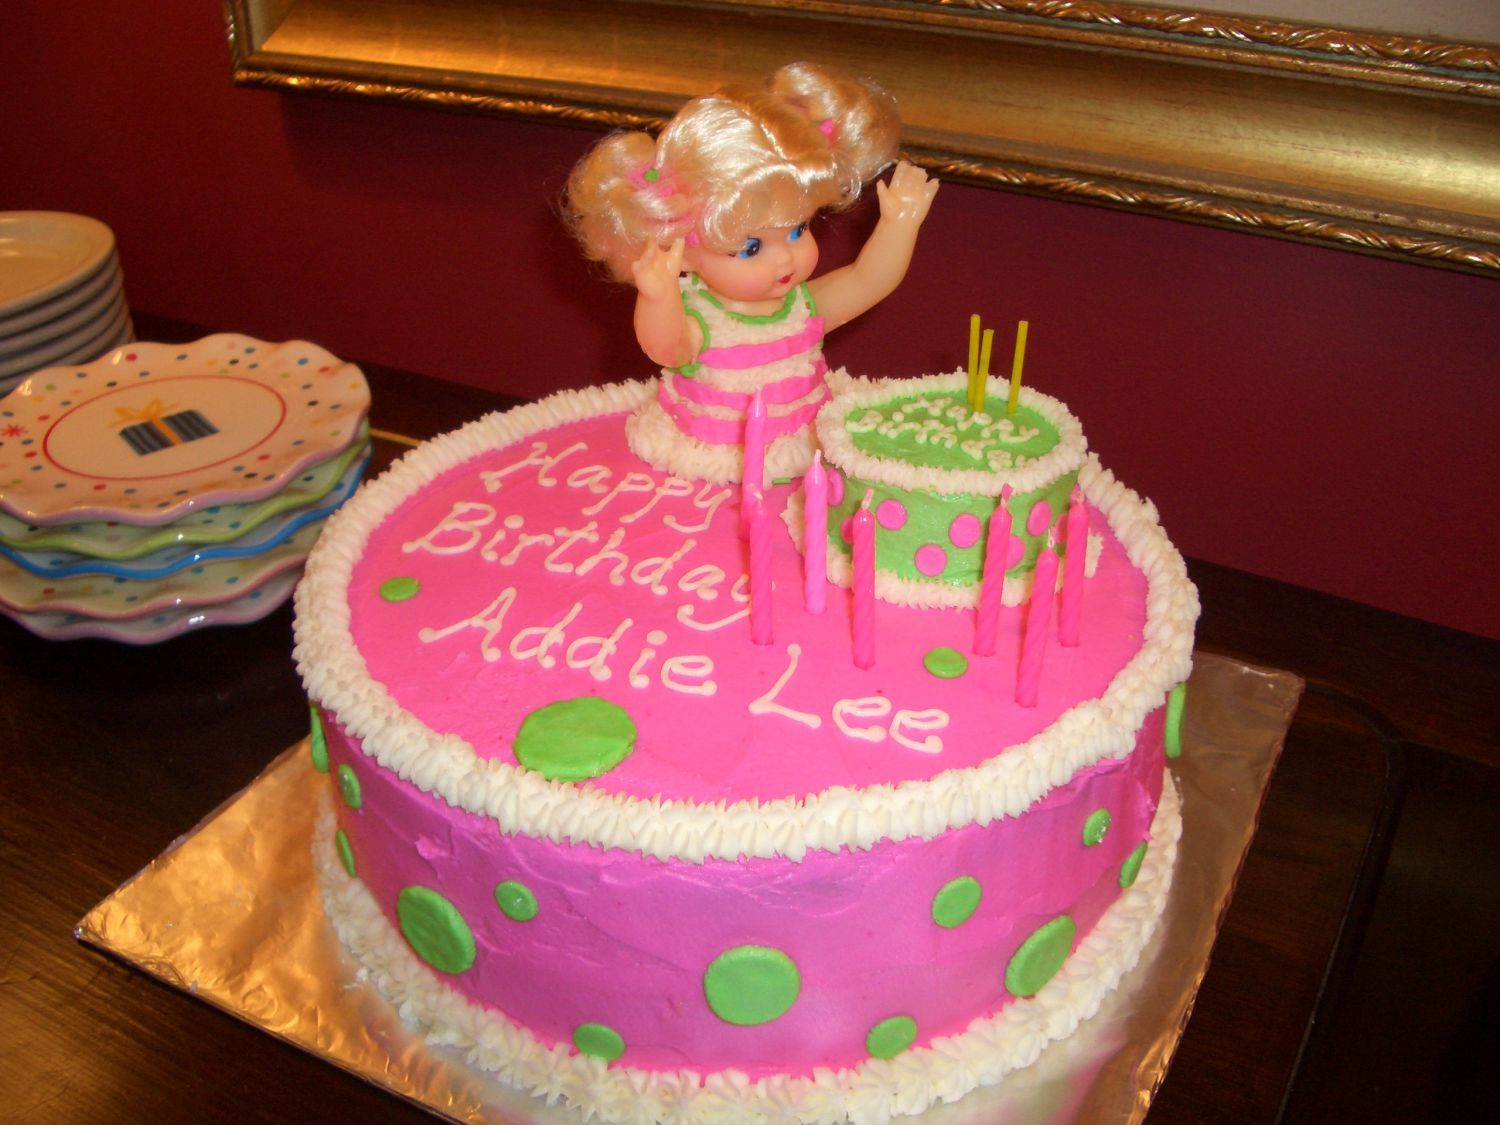 Baby Doll Party Birthday Cake This cake was for a 7 year old